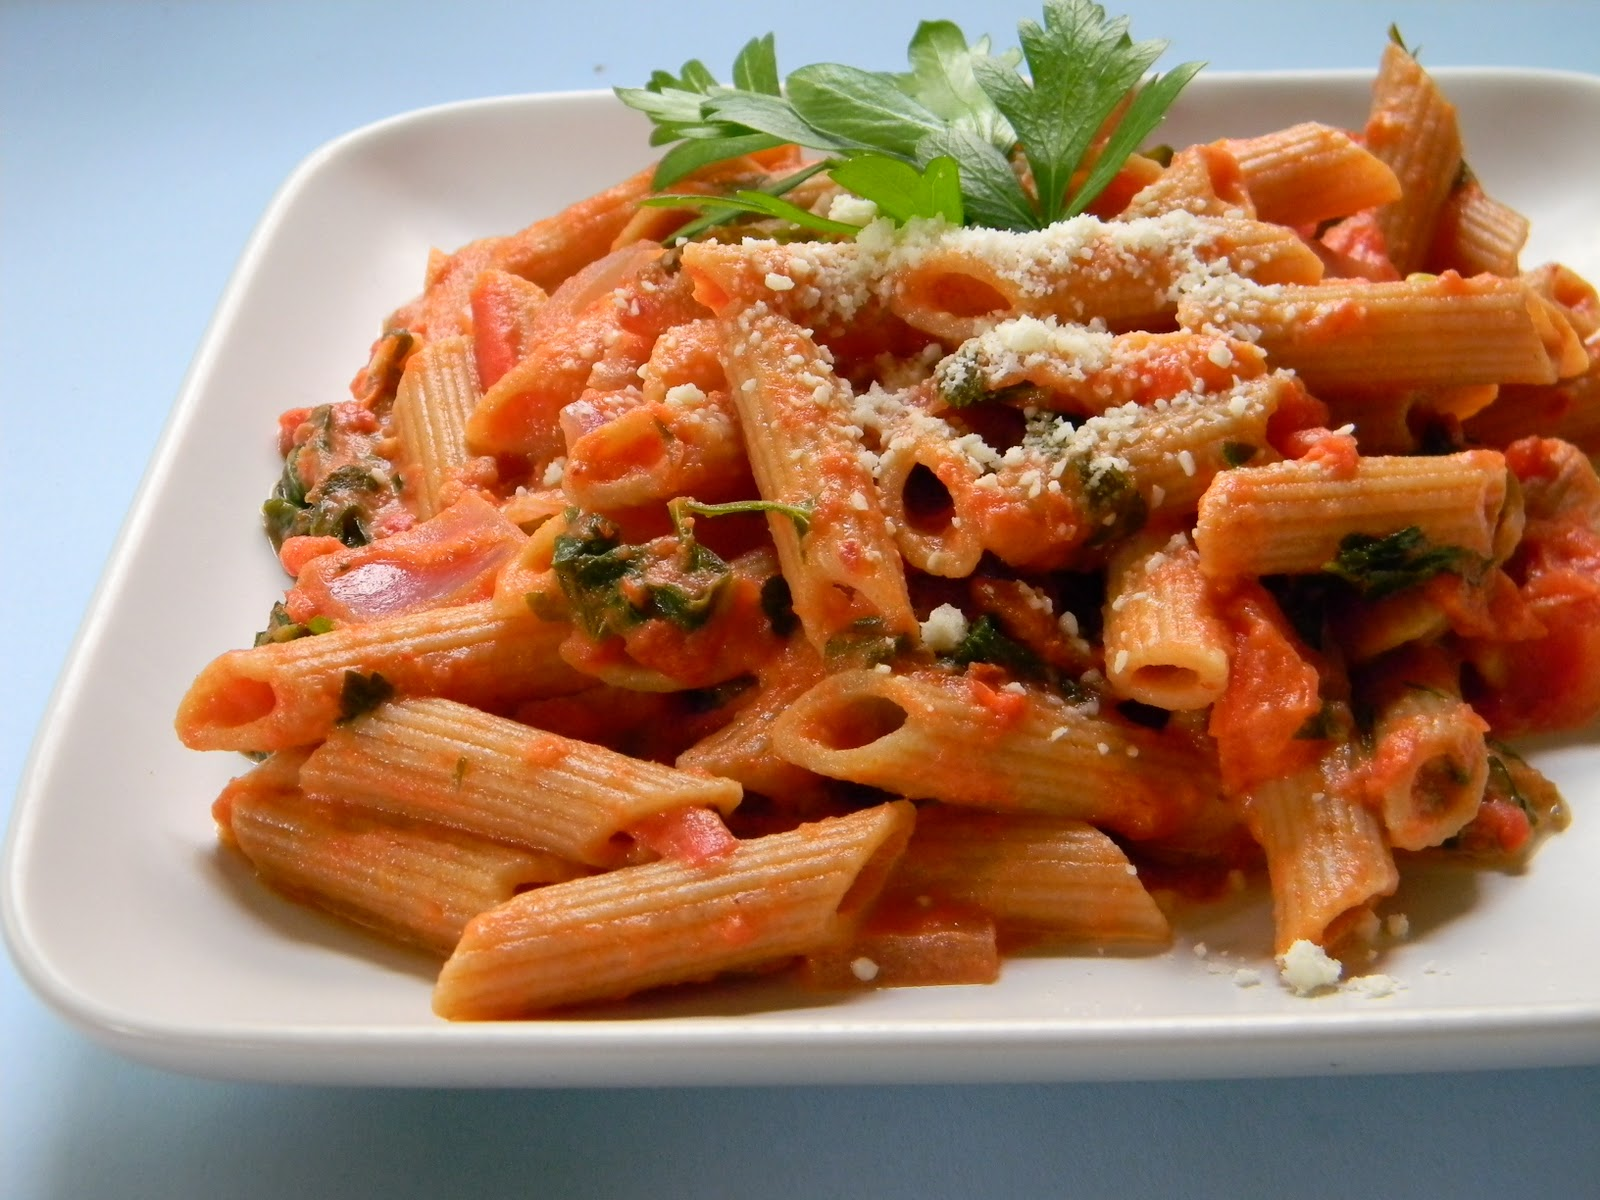 Whole Wheat Penne alla Vodka | Eat Good 4 Life